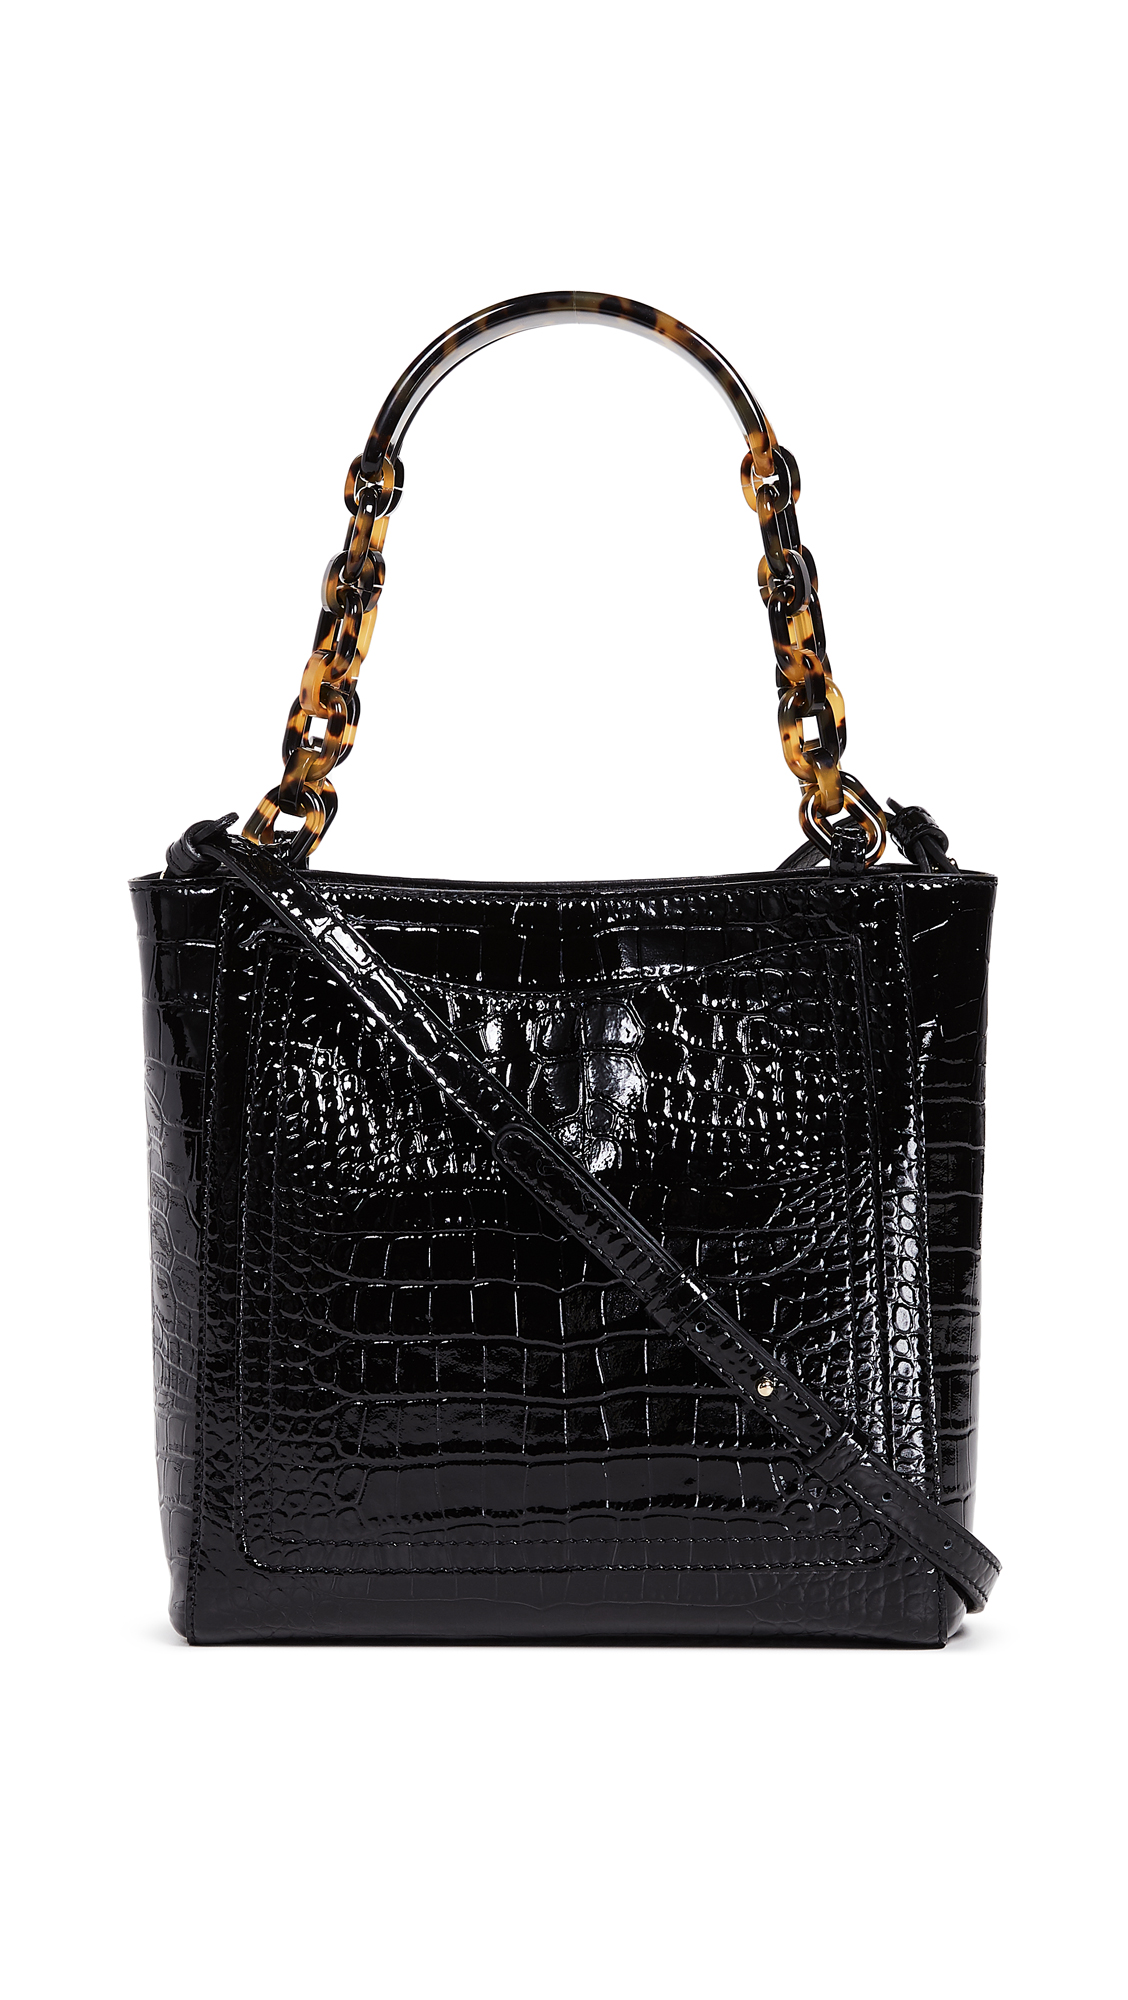 Edie Parker Mini Tote - Black